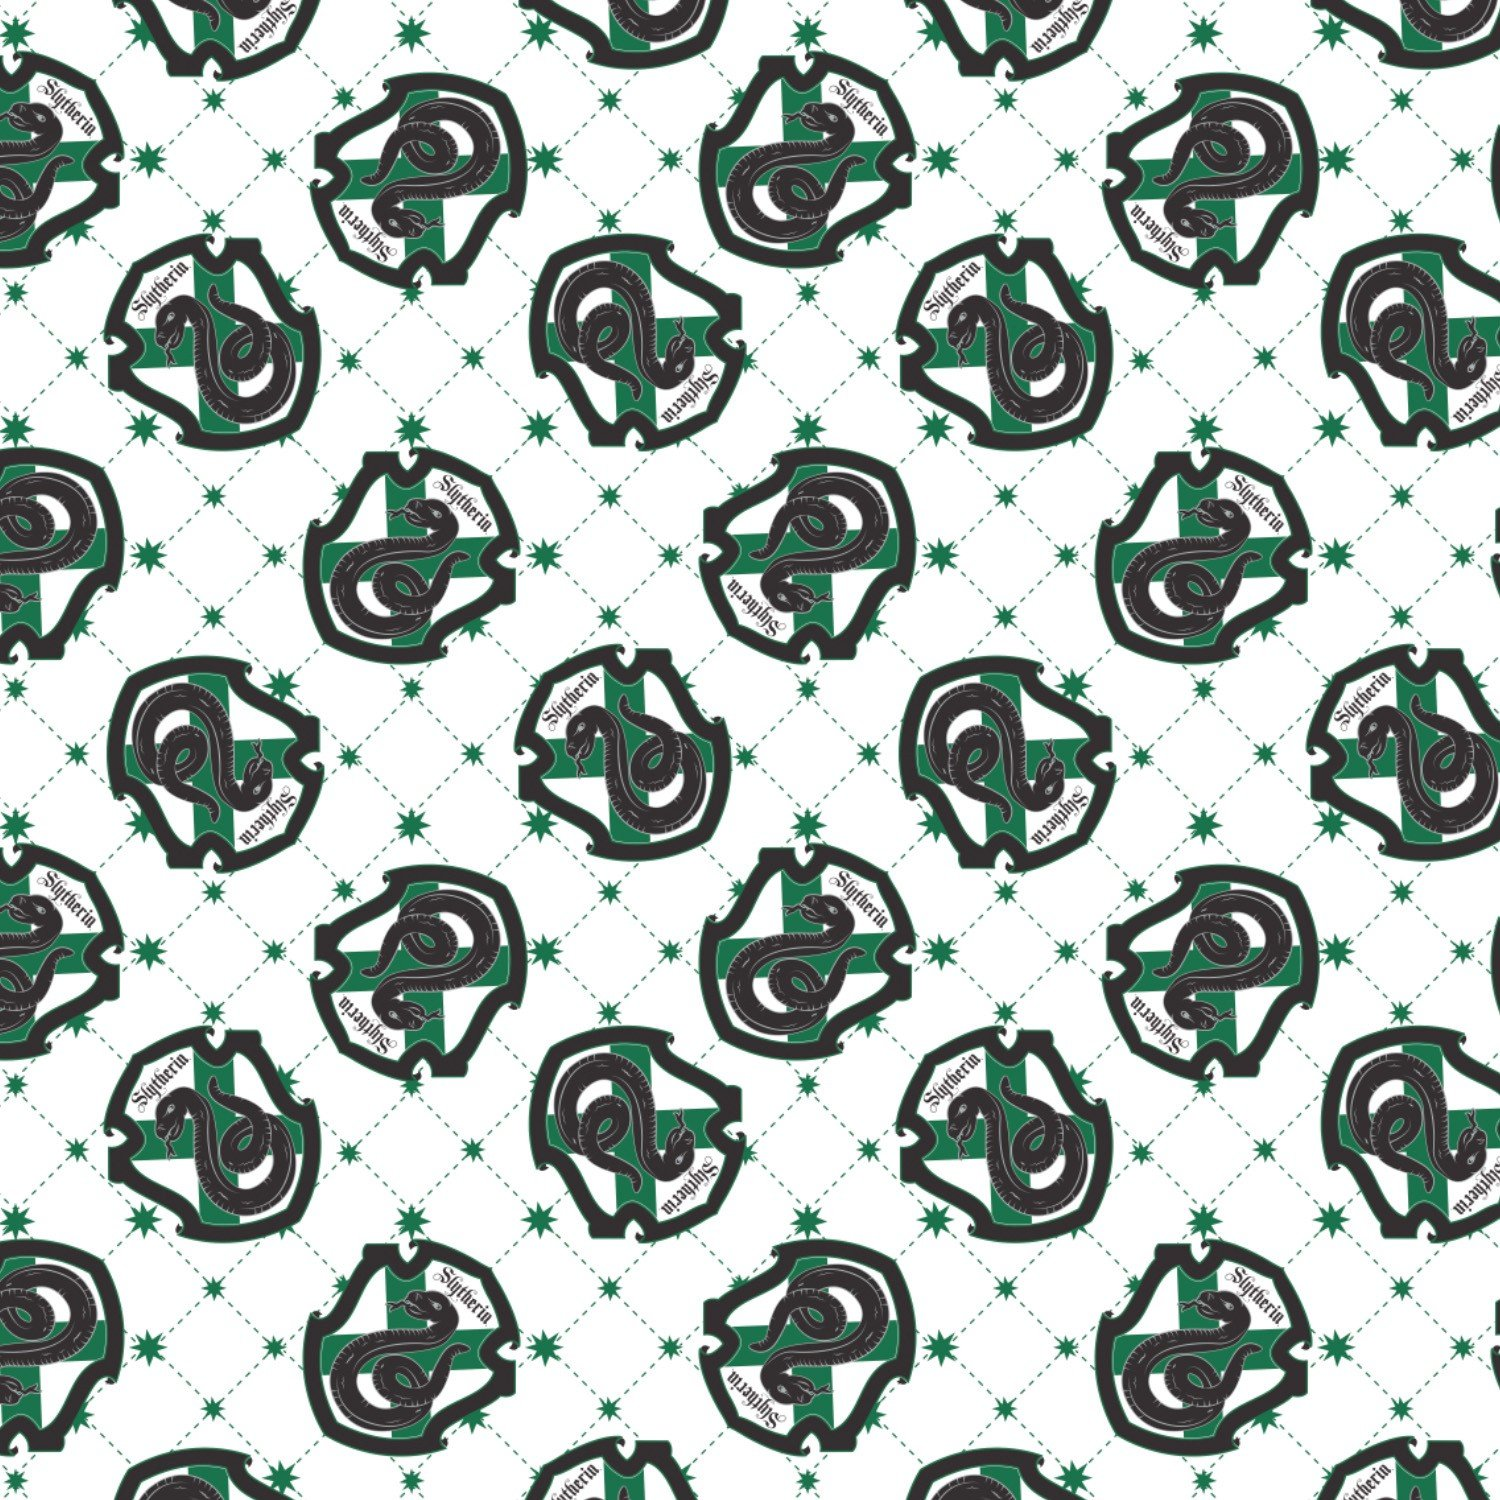 Camelot Wizarding World - Harry Potter 23800111 1 White Slytherin House Pride $11.50/yd